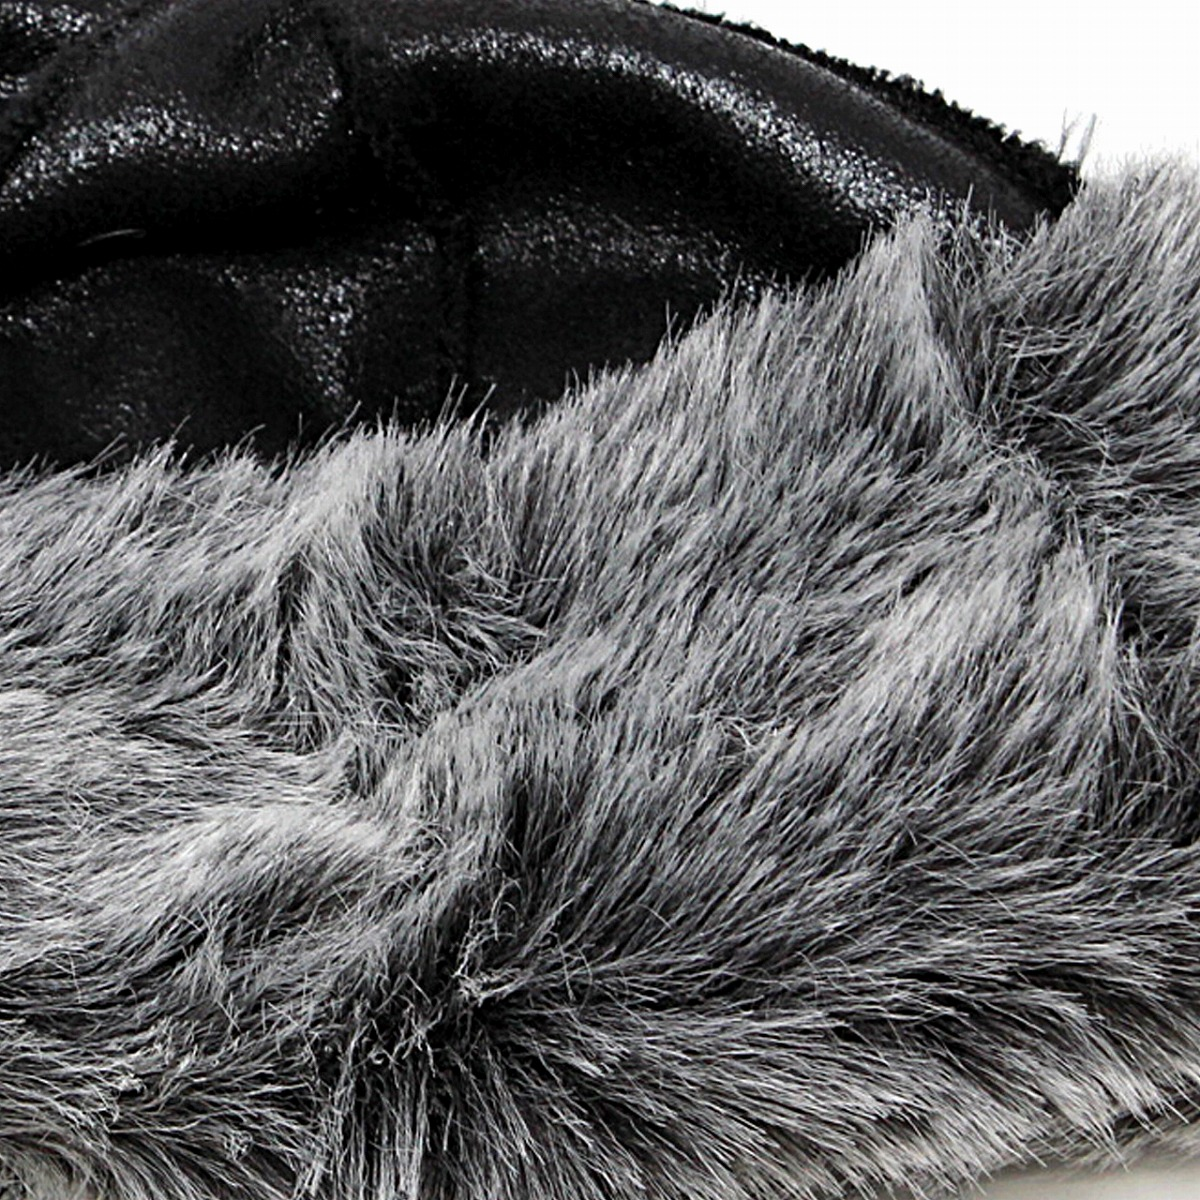 c1e2f29ce ROBERTidea Russia hat hat fur Roberto idea Russian hat Lady's hat black  black (Christmas gift packing lapping free of charge) in the fall and winter